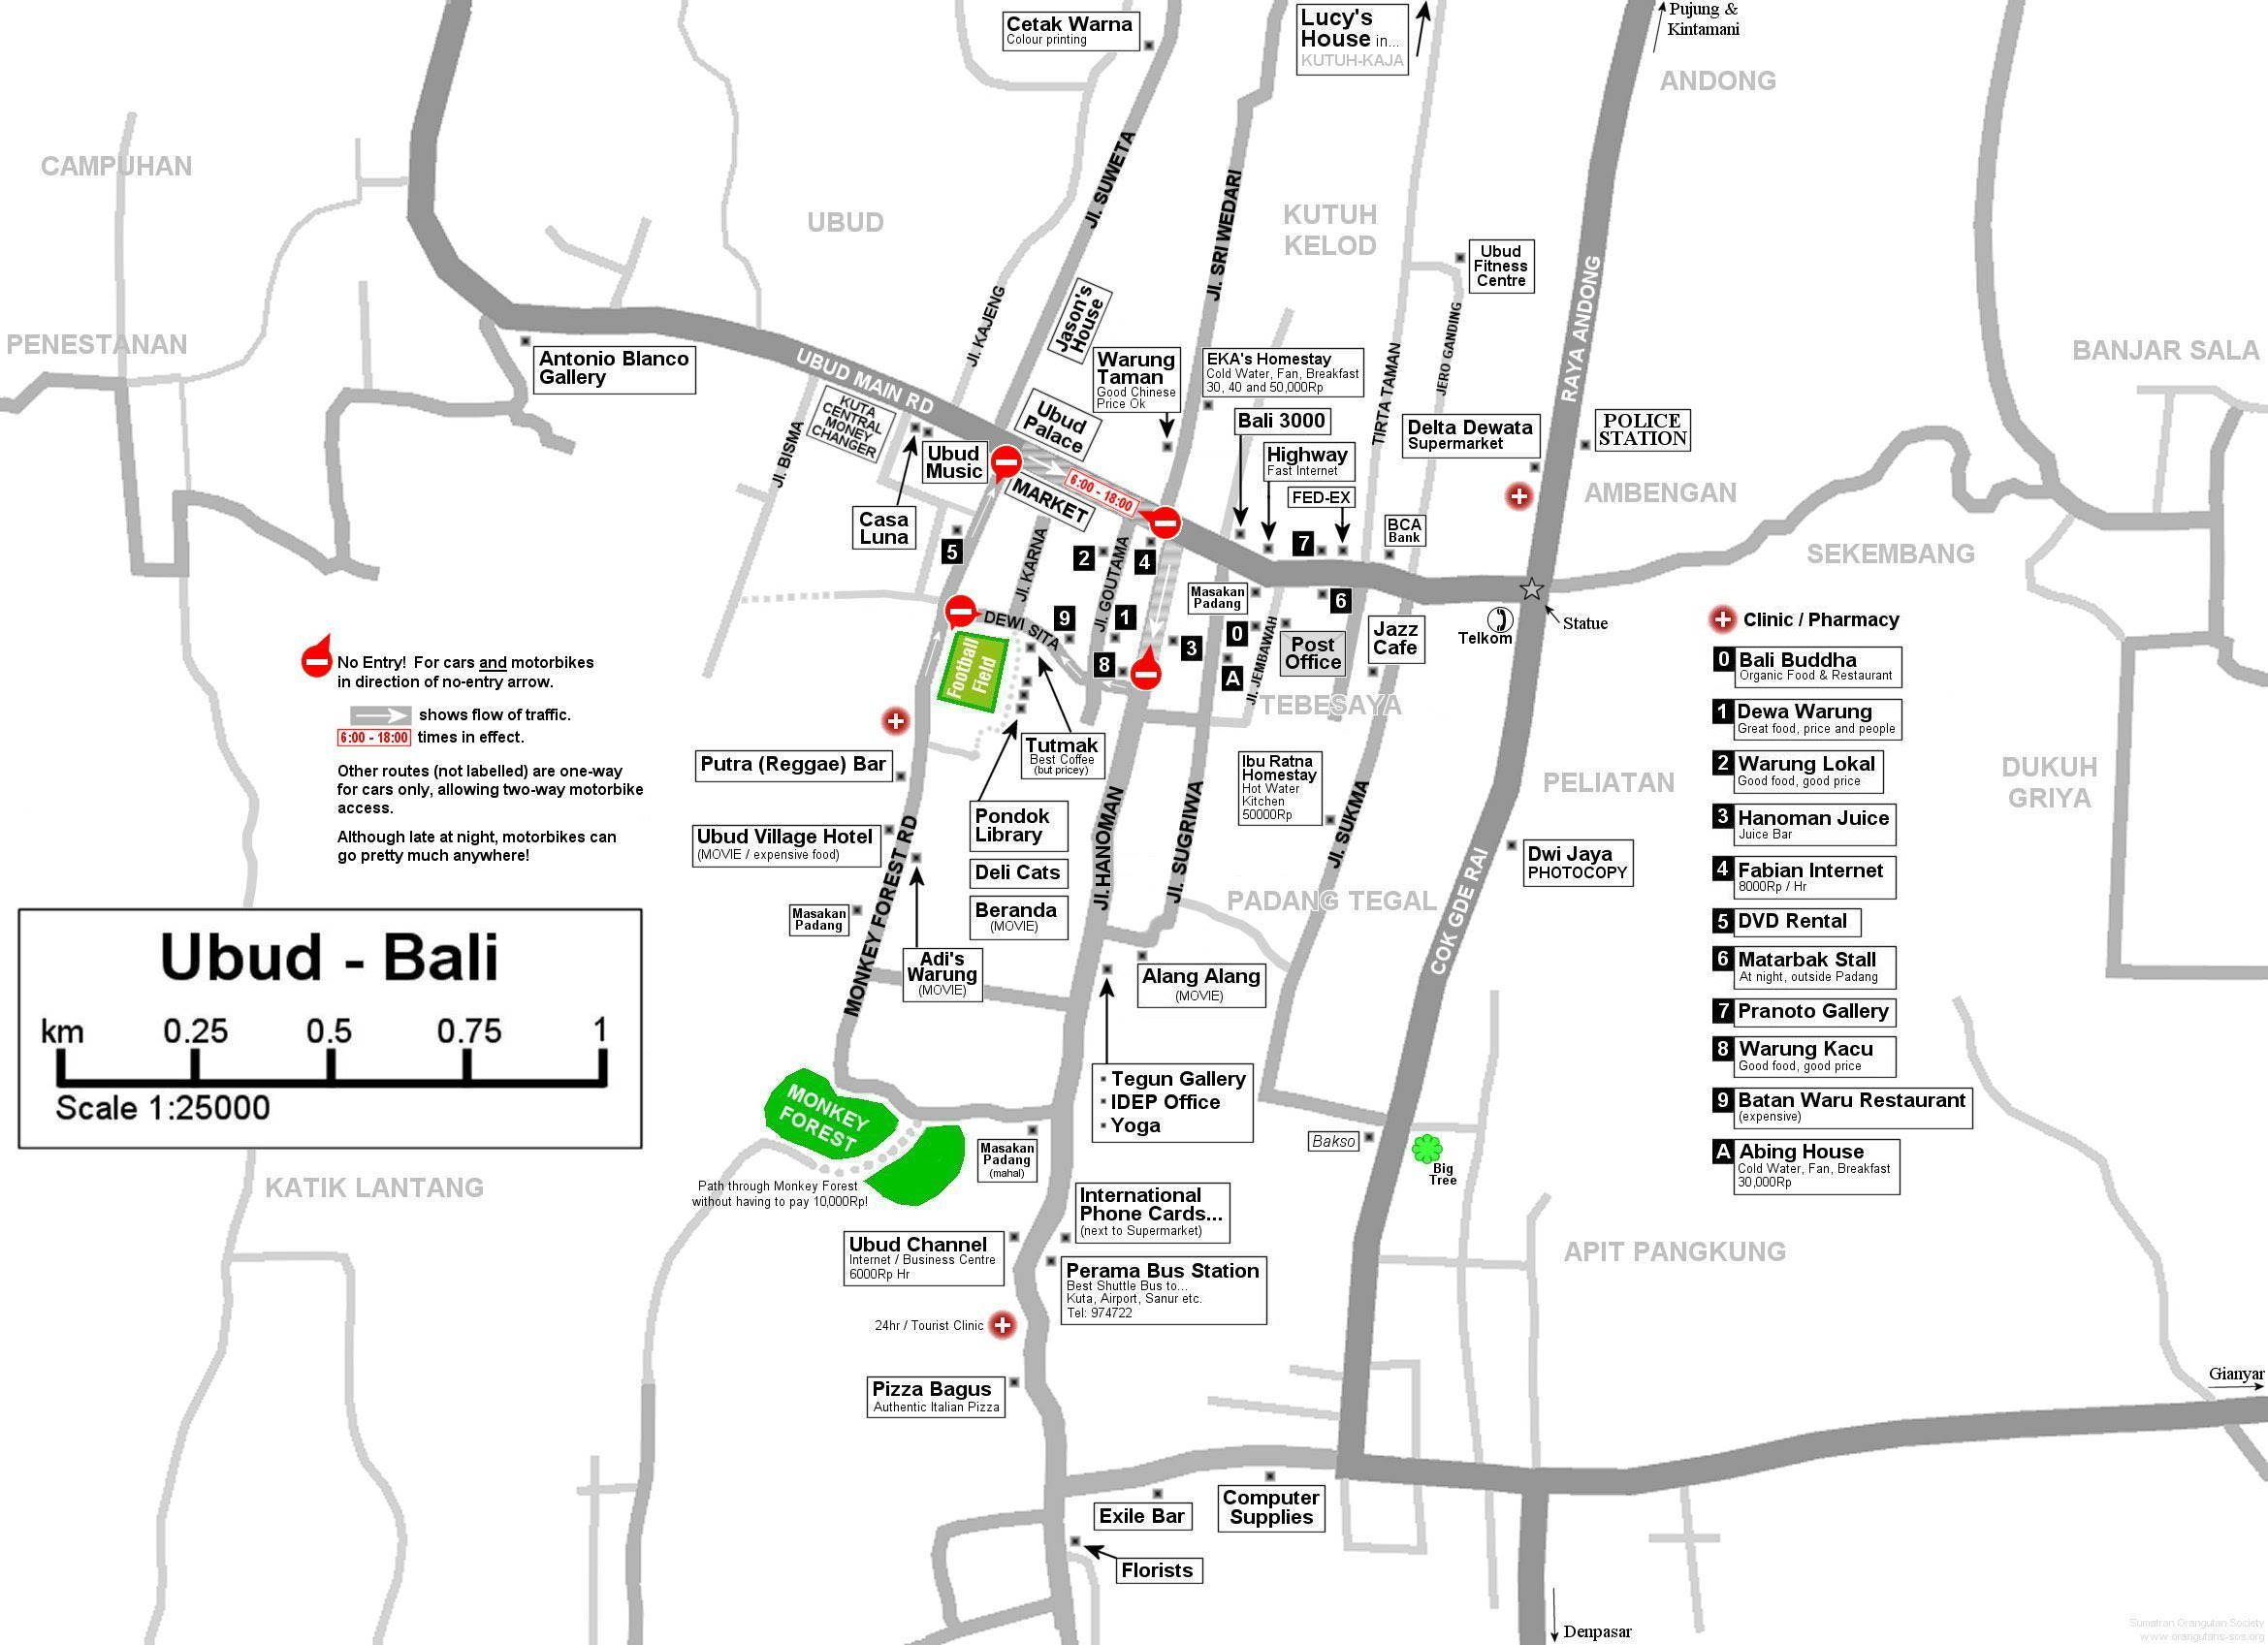 Ubud Bali Map,Ubud tourist Map,Map of Ubud Bali,Map Ubud Bali,Ubud Map Bali,ubud map in detail,ubud map google,ubud map tourist,ubud map pdf,ubud hotels map,things do ubud,ubud homestay,ubud restaurants map